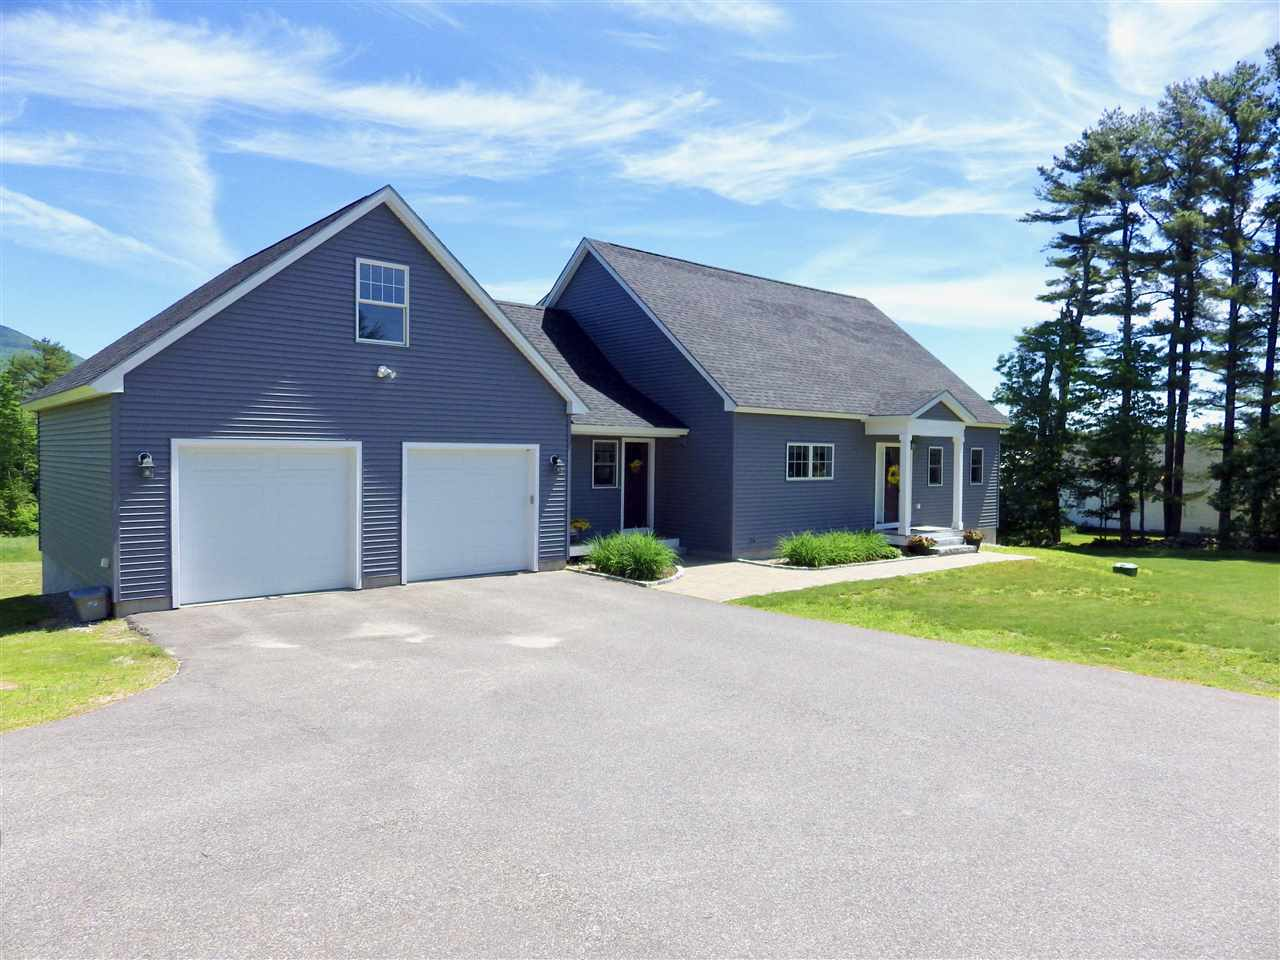 MLS 4760679: 551 Governor Wentworth Highway, Tuftonboro NH